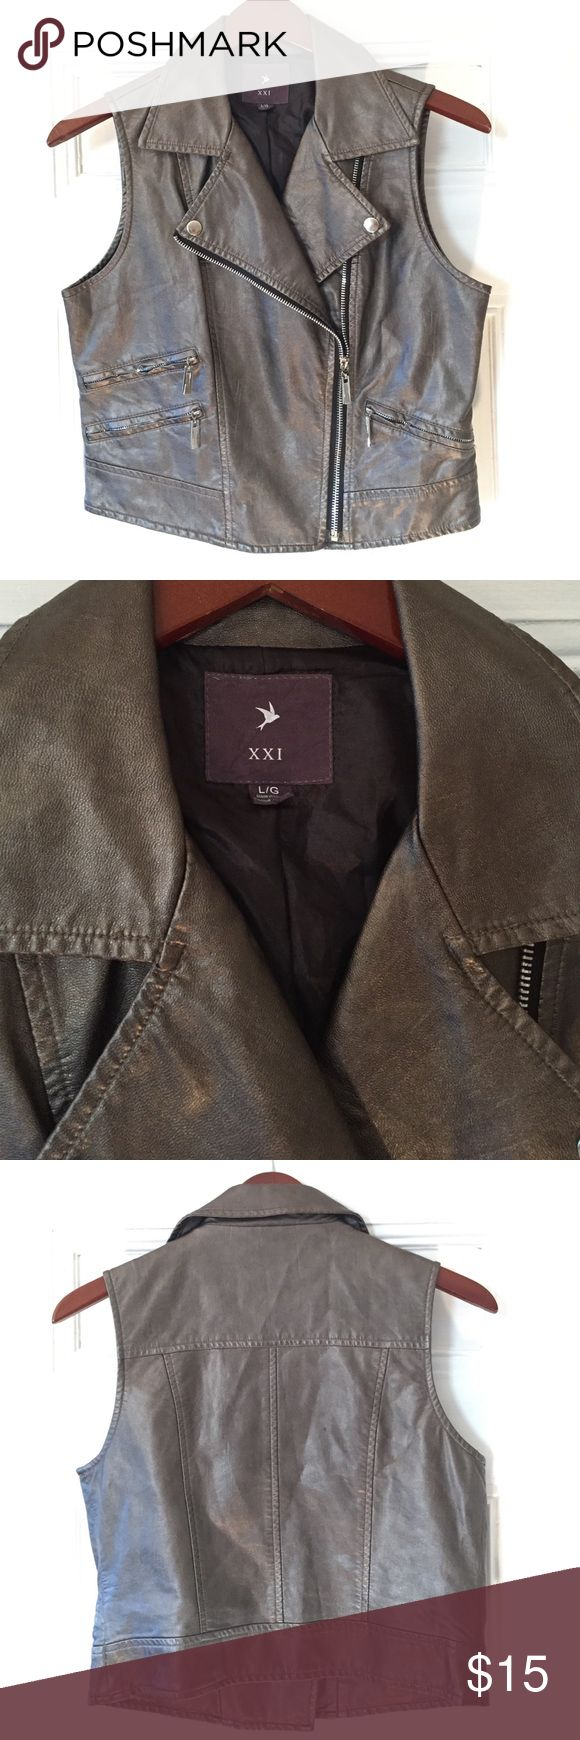 XXI Forever 21 Faux Leather Metallic Vest Sz L XXI Forever 21 Women's Faux Leather Metallic Vest Sz Large in EXCELLENT condition. It does not appear to have been worn. Silver/great metallic. Forever 21 Jackets & Coats Vests